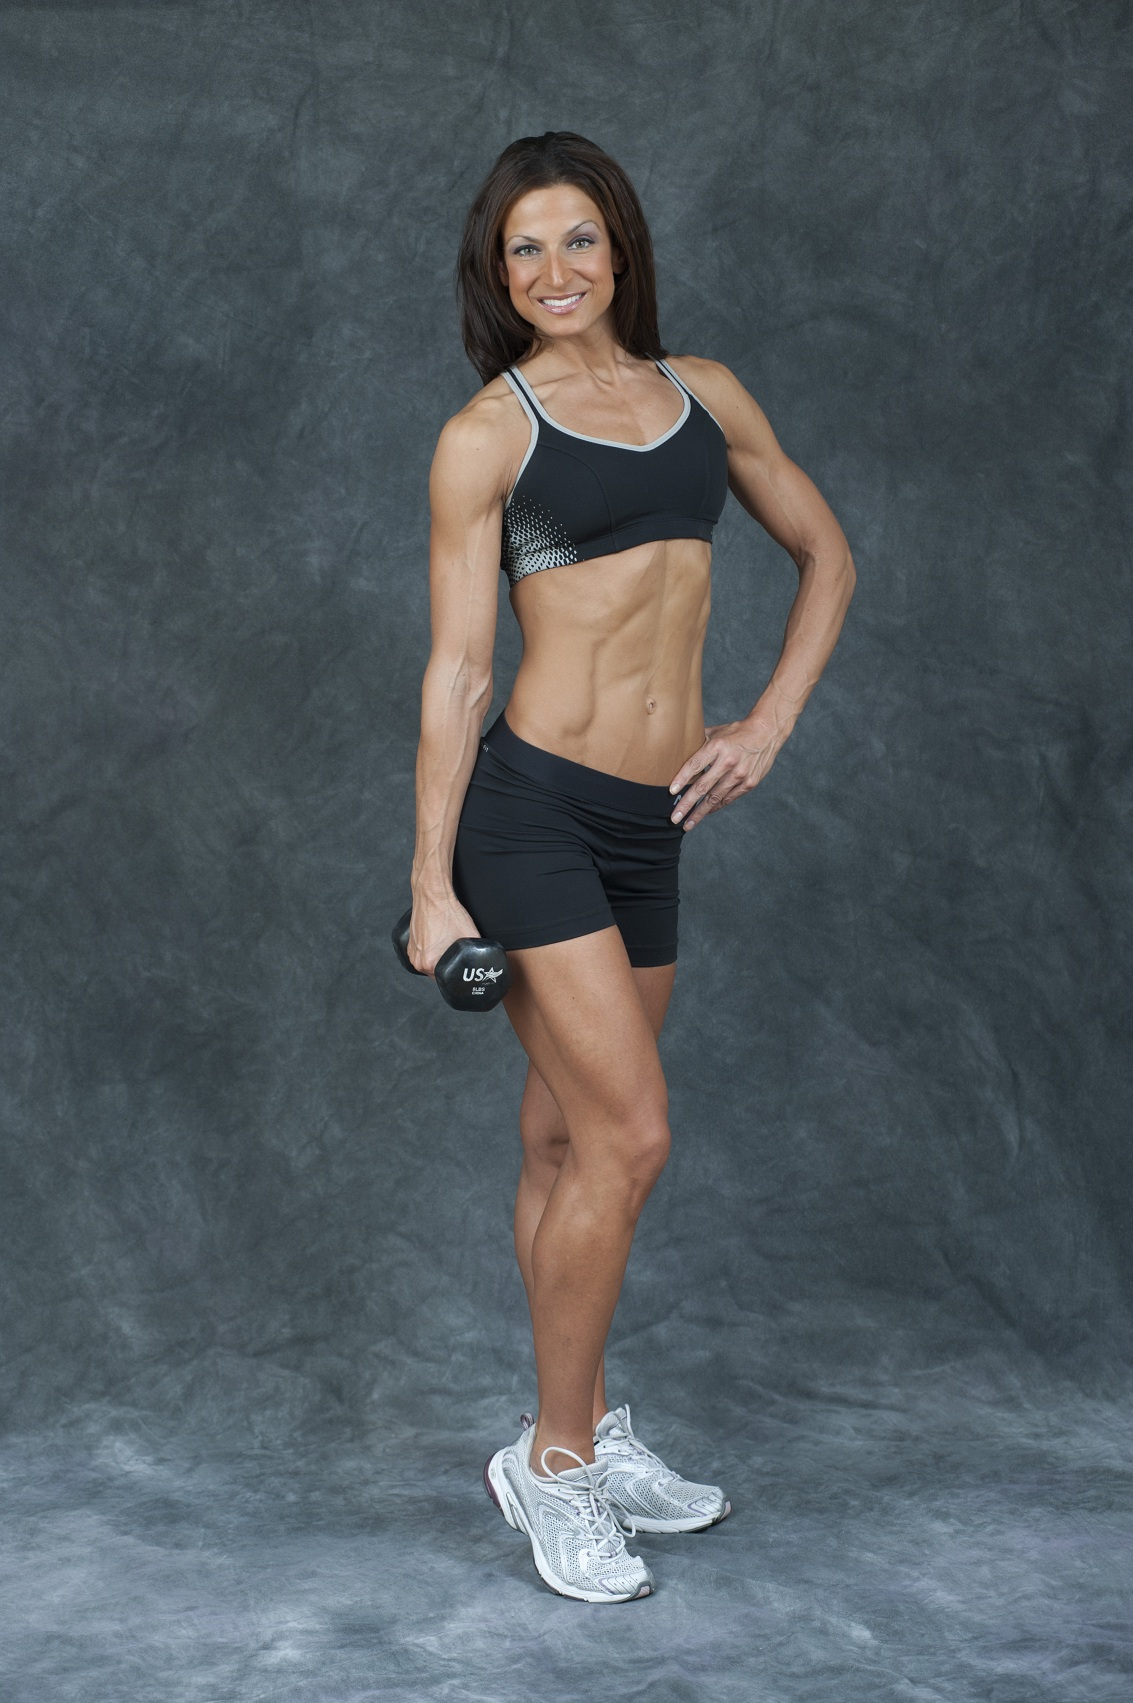 fitness competitor lauren ashby speaks com the team would like to thank you greatly for taking the time to do this interview do you have any last words for our readers